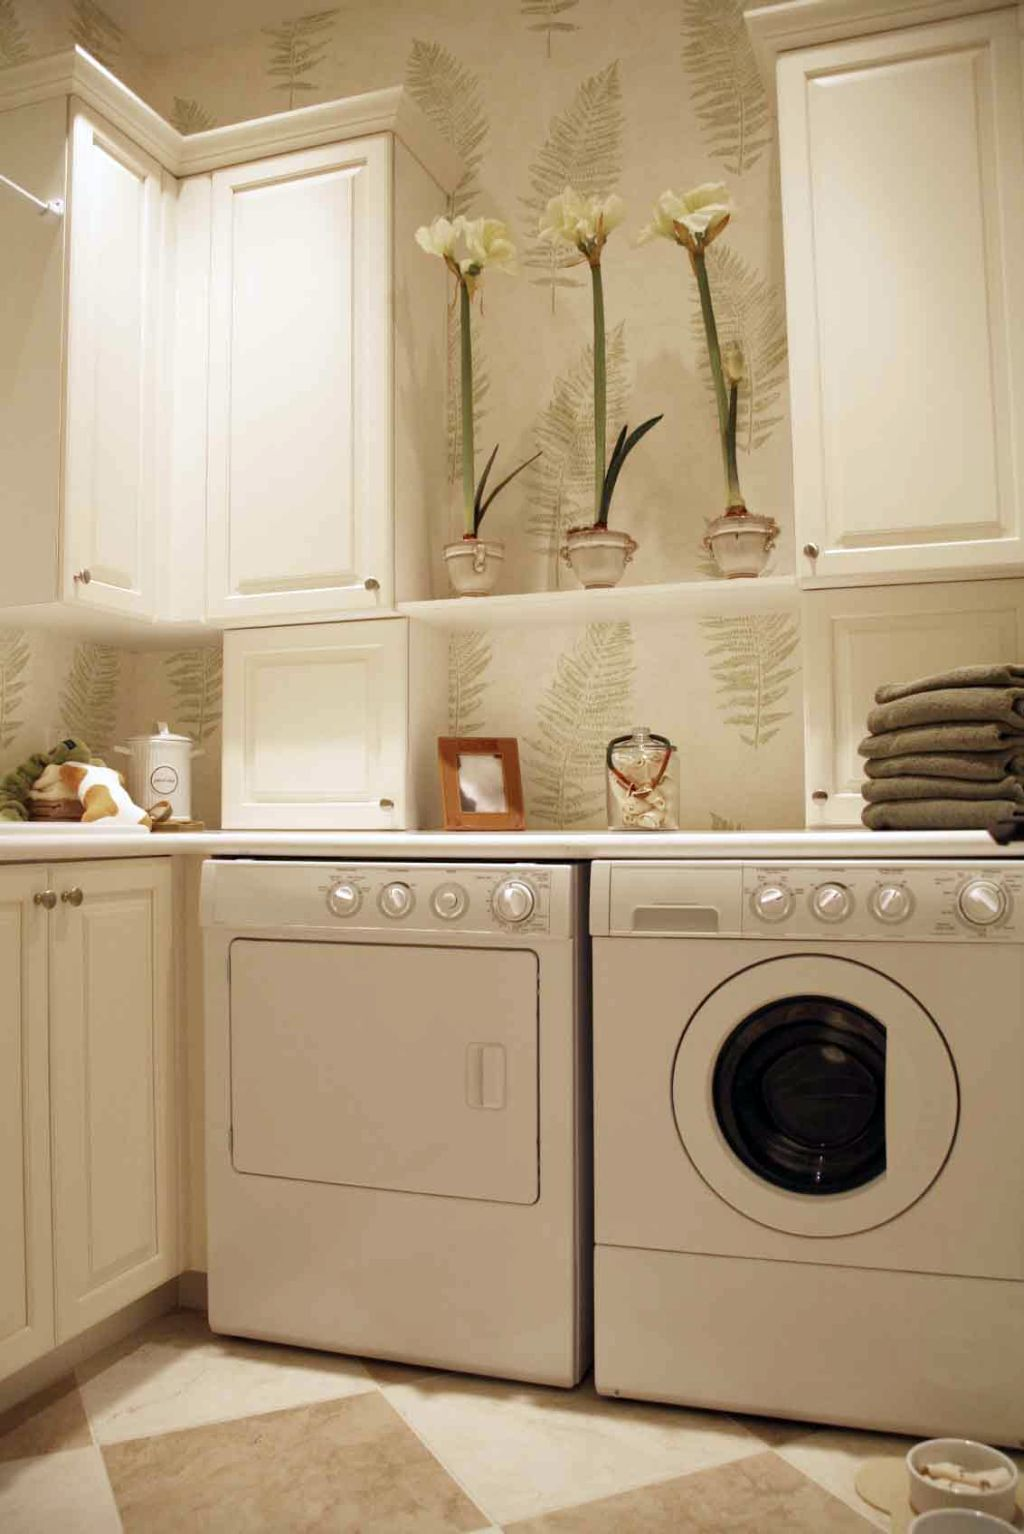 small laundry room ideas 20 beautiful designs for small laundry rooms 30661